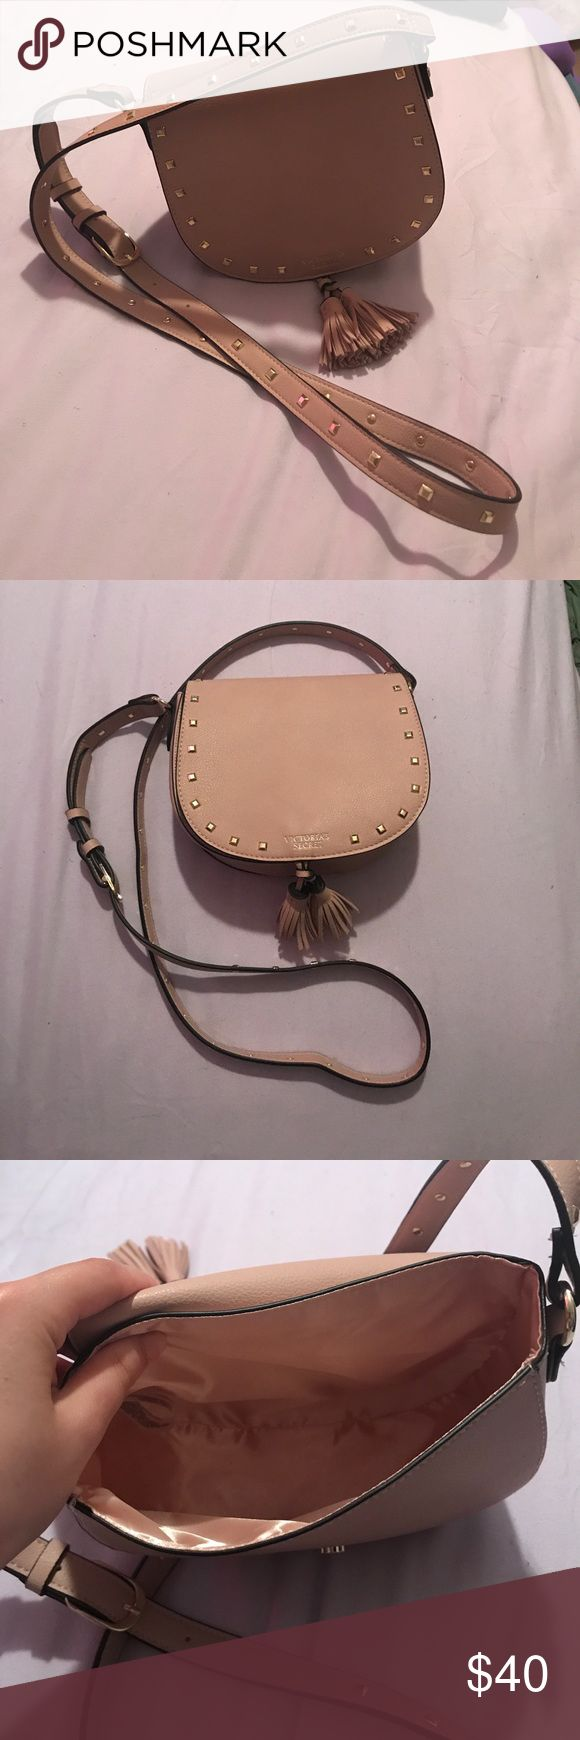 Victoria's Secret Festival Cross Body Bag Cute little cross body bag from Victoria's Secret! It is a creamy nude color with a magnetic closure, two cute tassels, and gold studs on front as well as along the strap. Plenty of room for a small wallet and phone! Victoria's Secret Bags Crossbody Bags